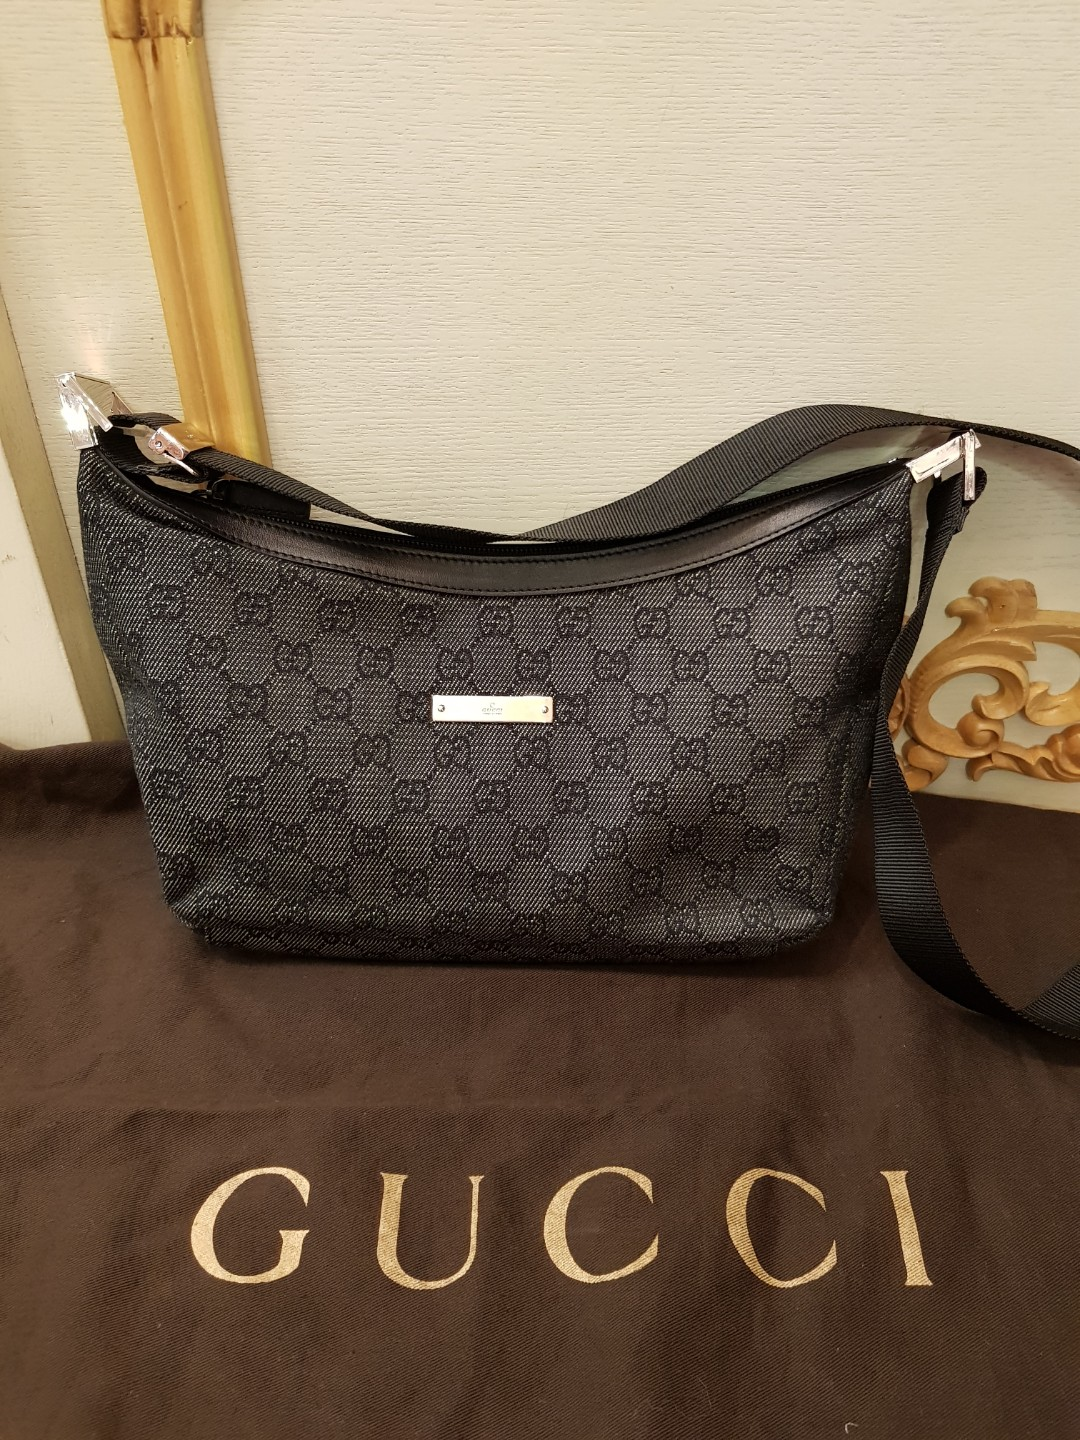 c37c010bba8 💖 100% authentic Gucci Bag 💖